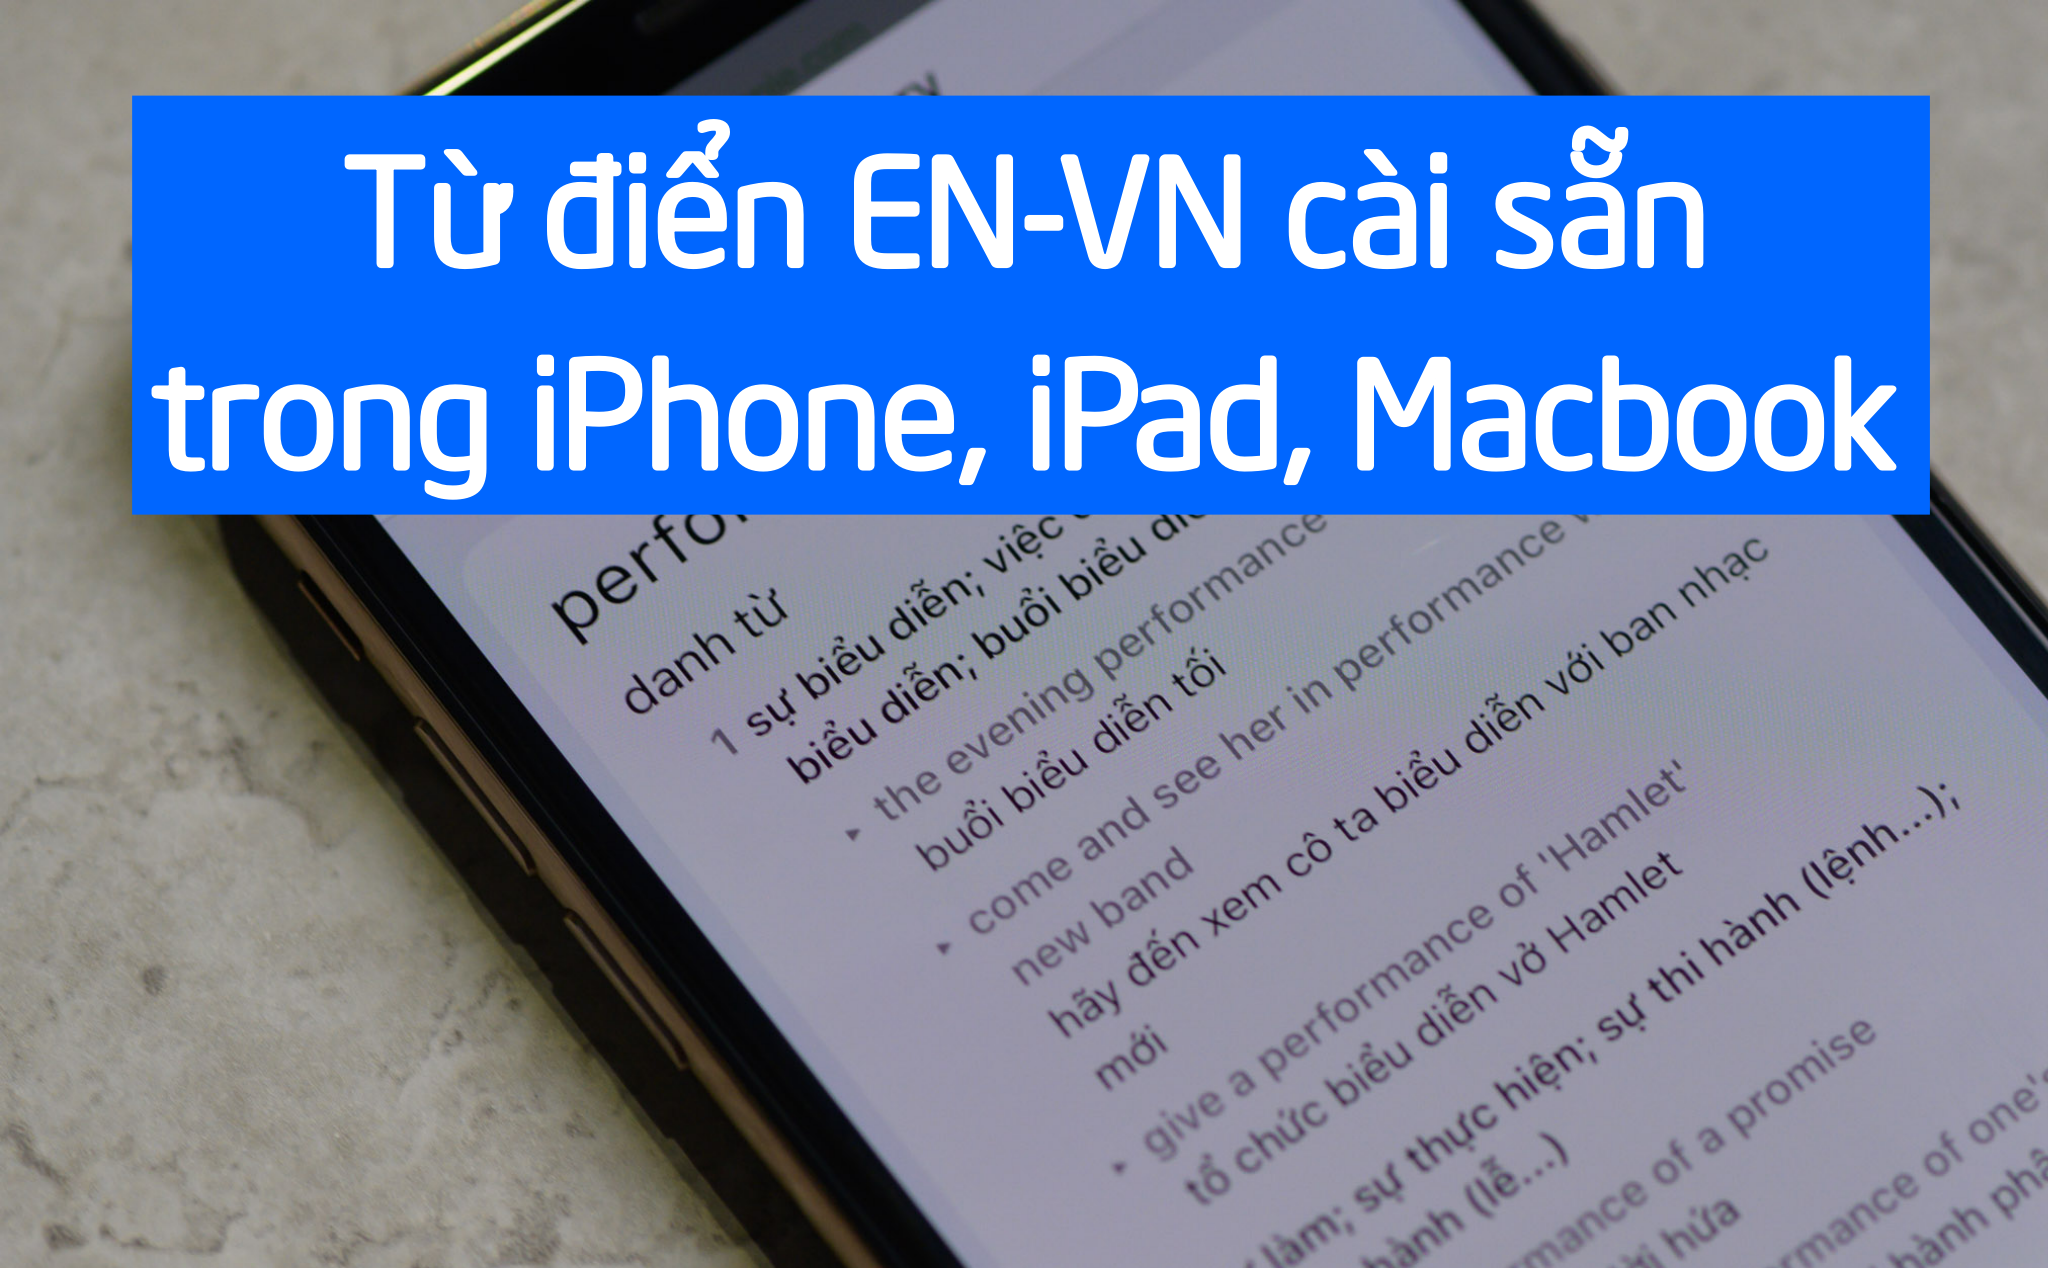 Trial EN-VN Dictionary integrated in new iOS, iPadOS and macOS